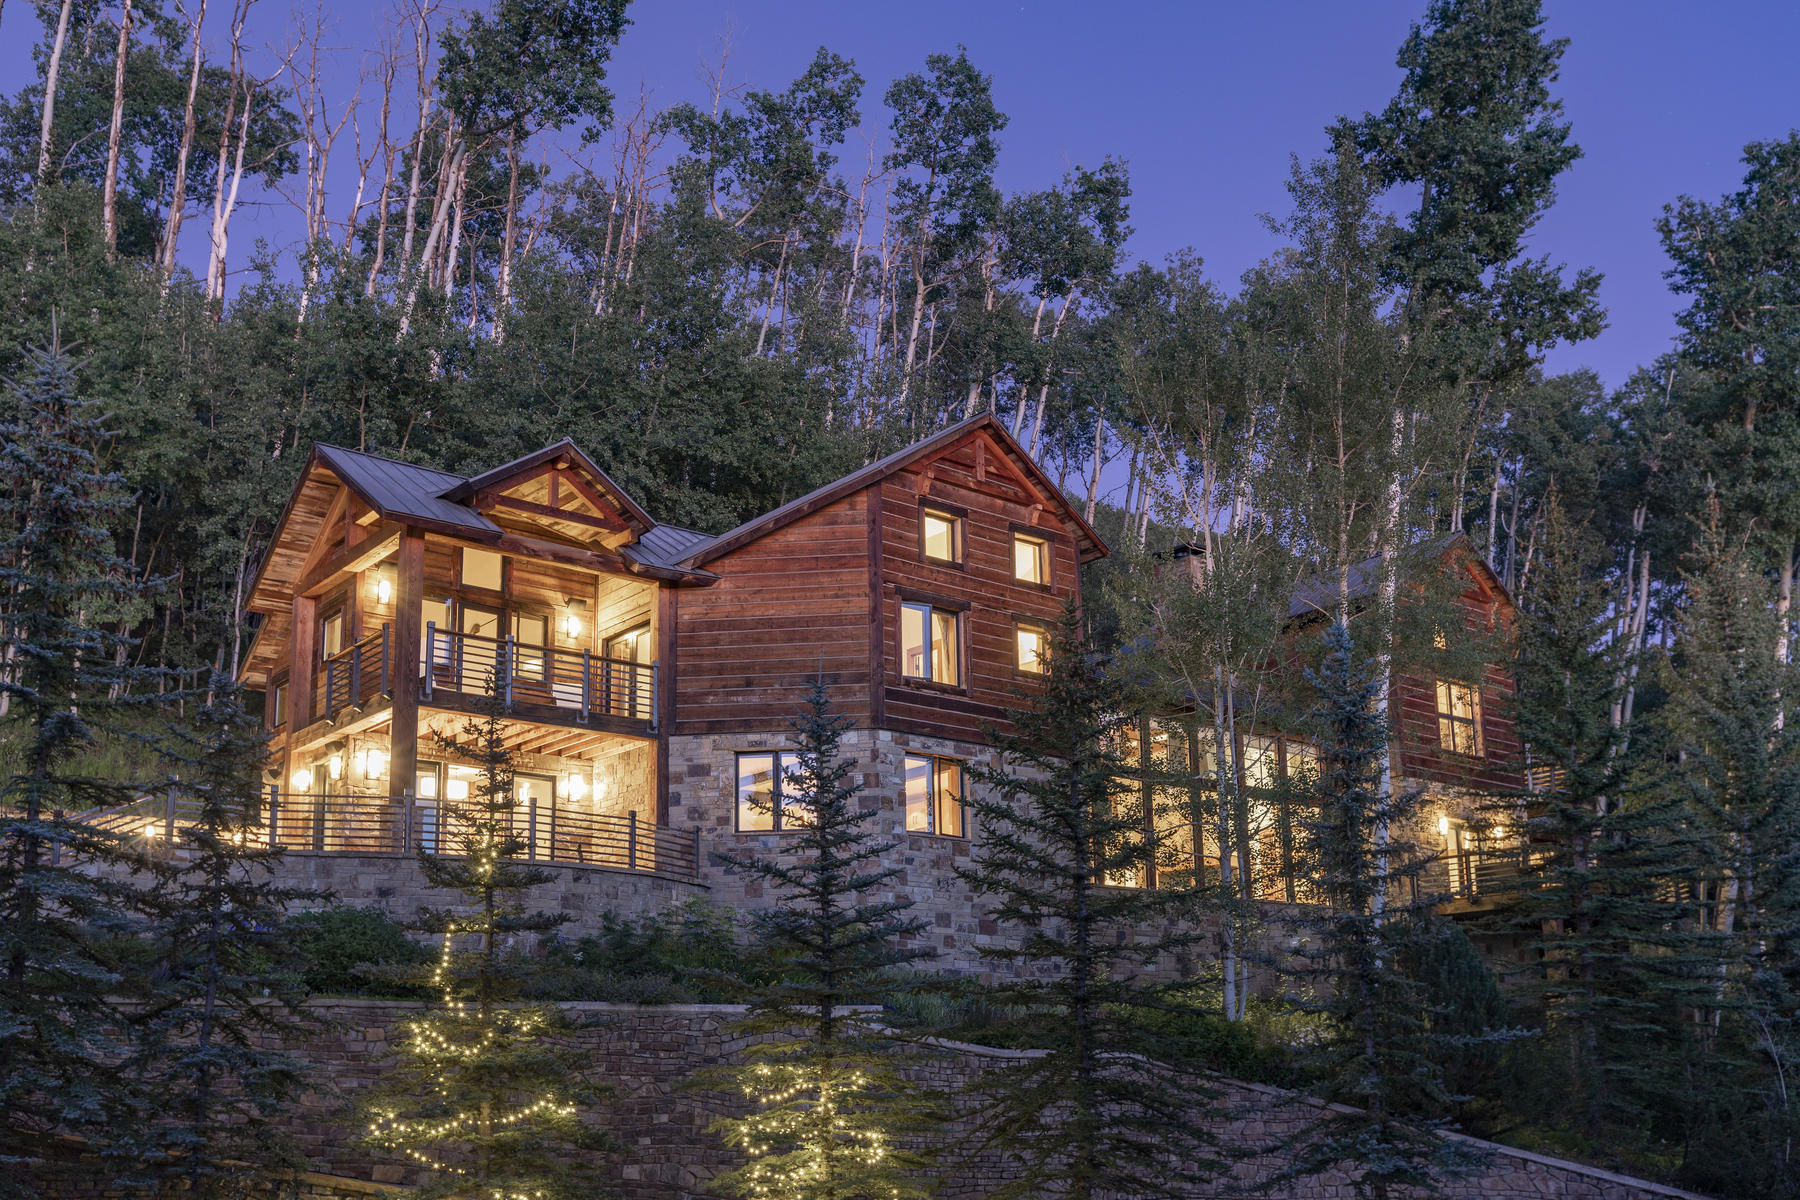 Single Family Homes for Active at 692 Mountain Village Boulevard Mountain Village, Colorado 81435 United States